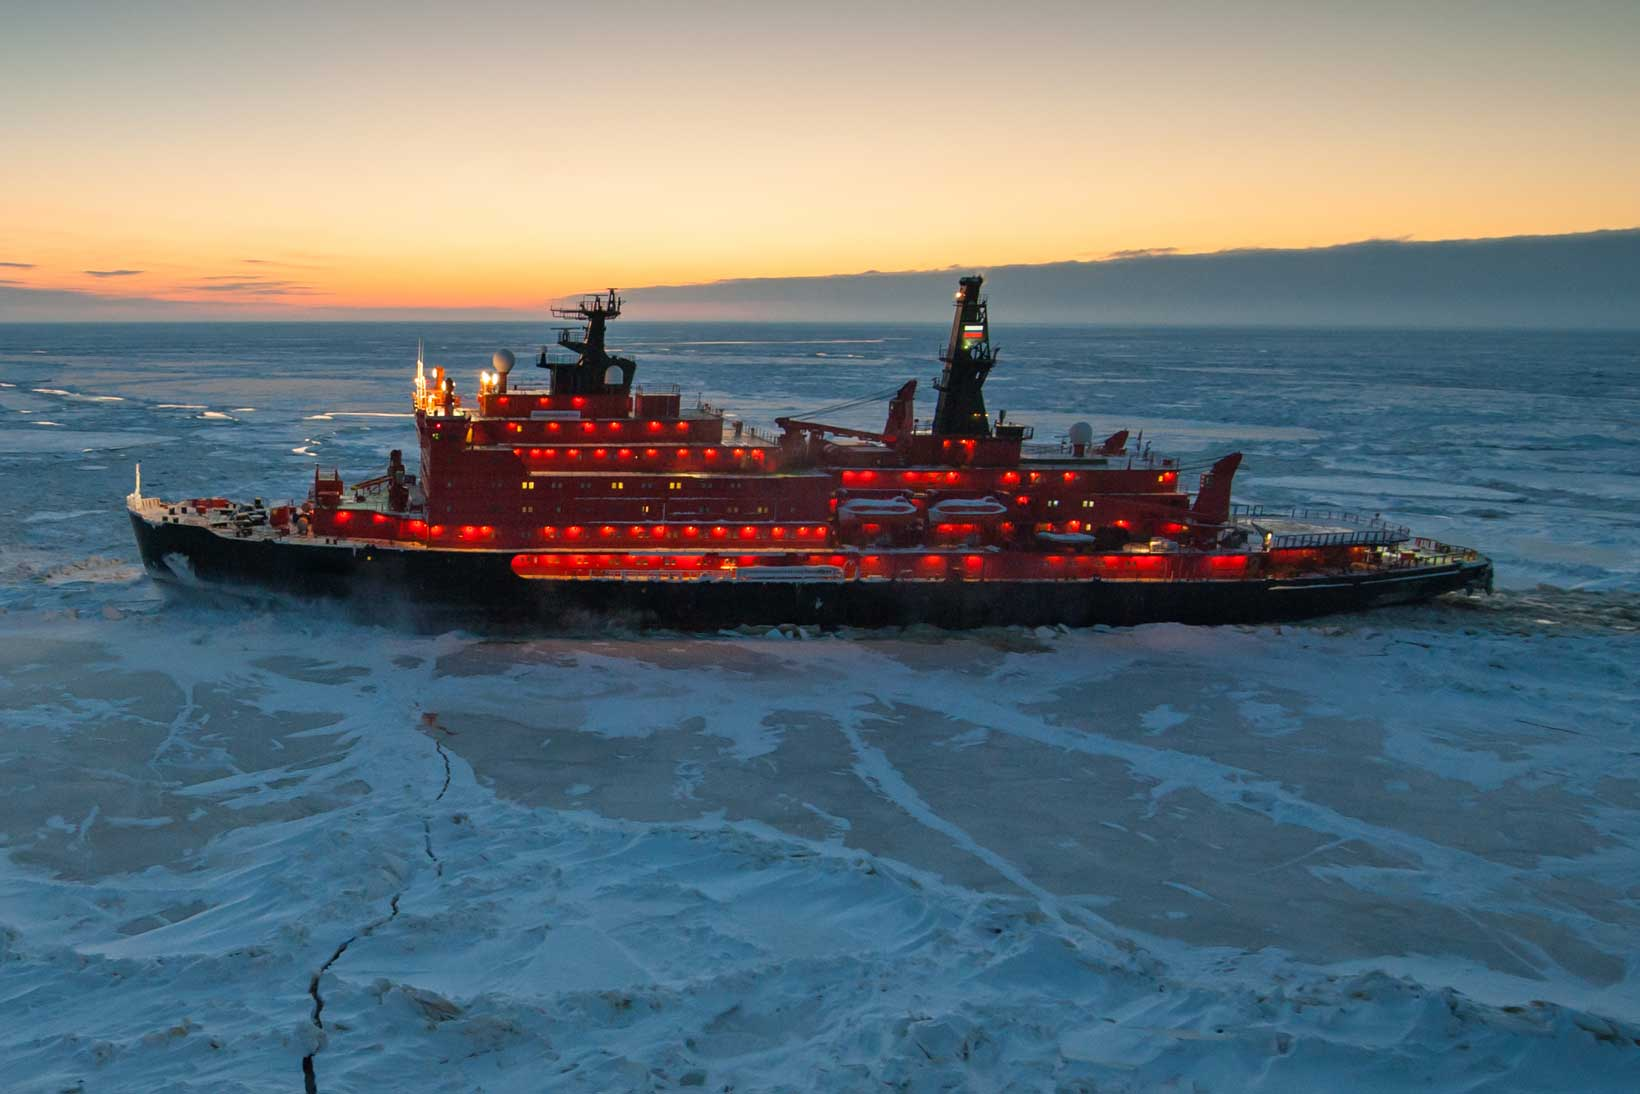 Icebreaking vessel in Arctic with background of sunset